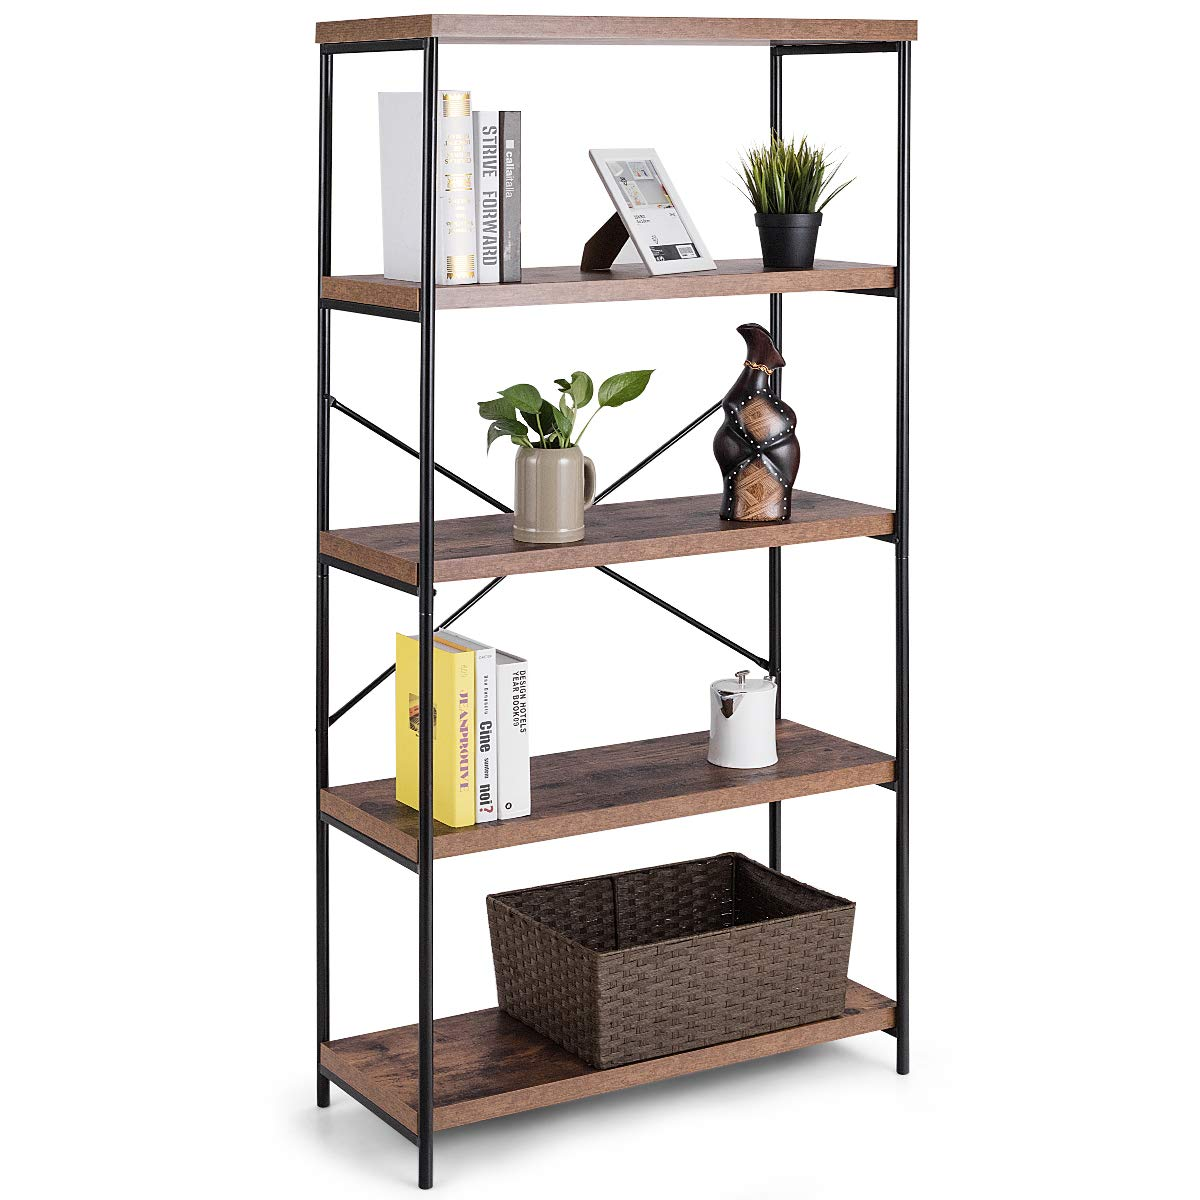 Tangkula 4-tier Bookcase, Multipurpose Rustic Industrial Bookshelf, Dã©cor  Accent For Home, Office, Living Room, Bedroom, Wood Shelves W/metal  X-shaped